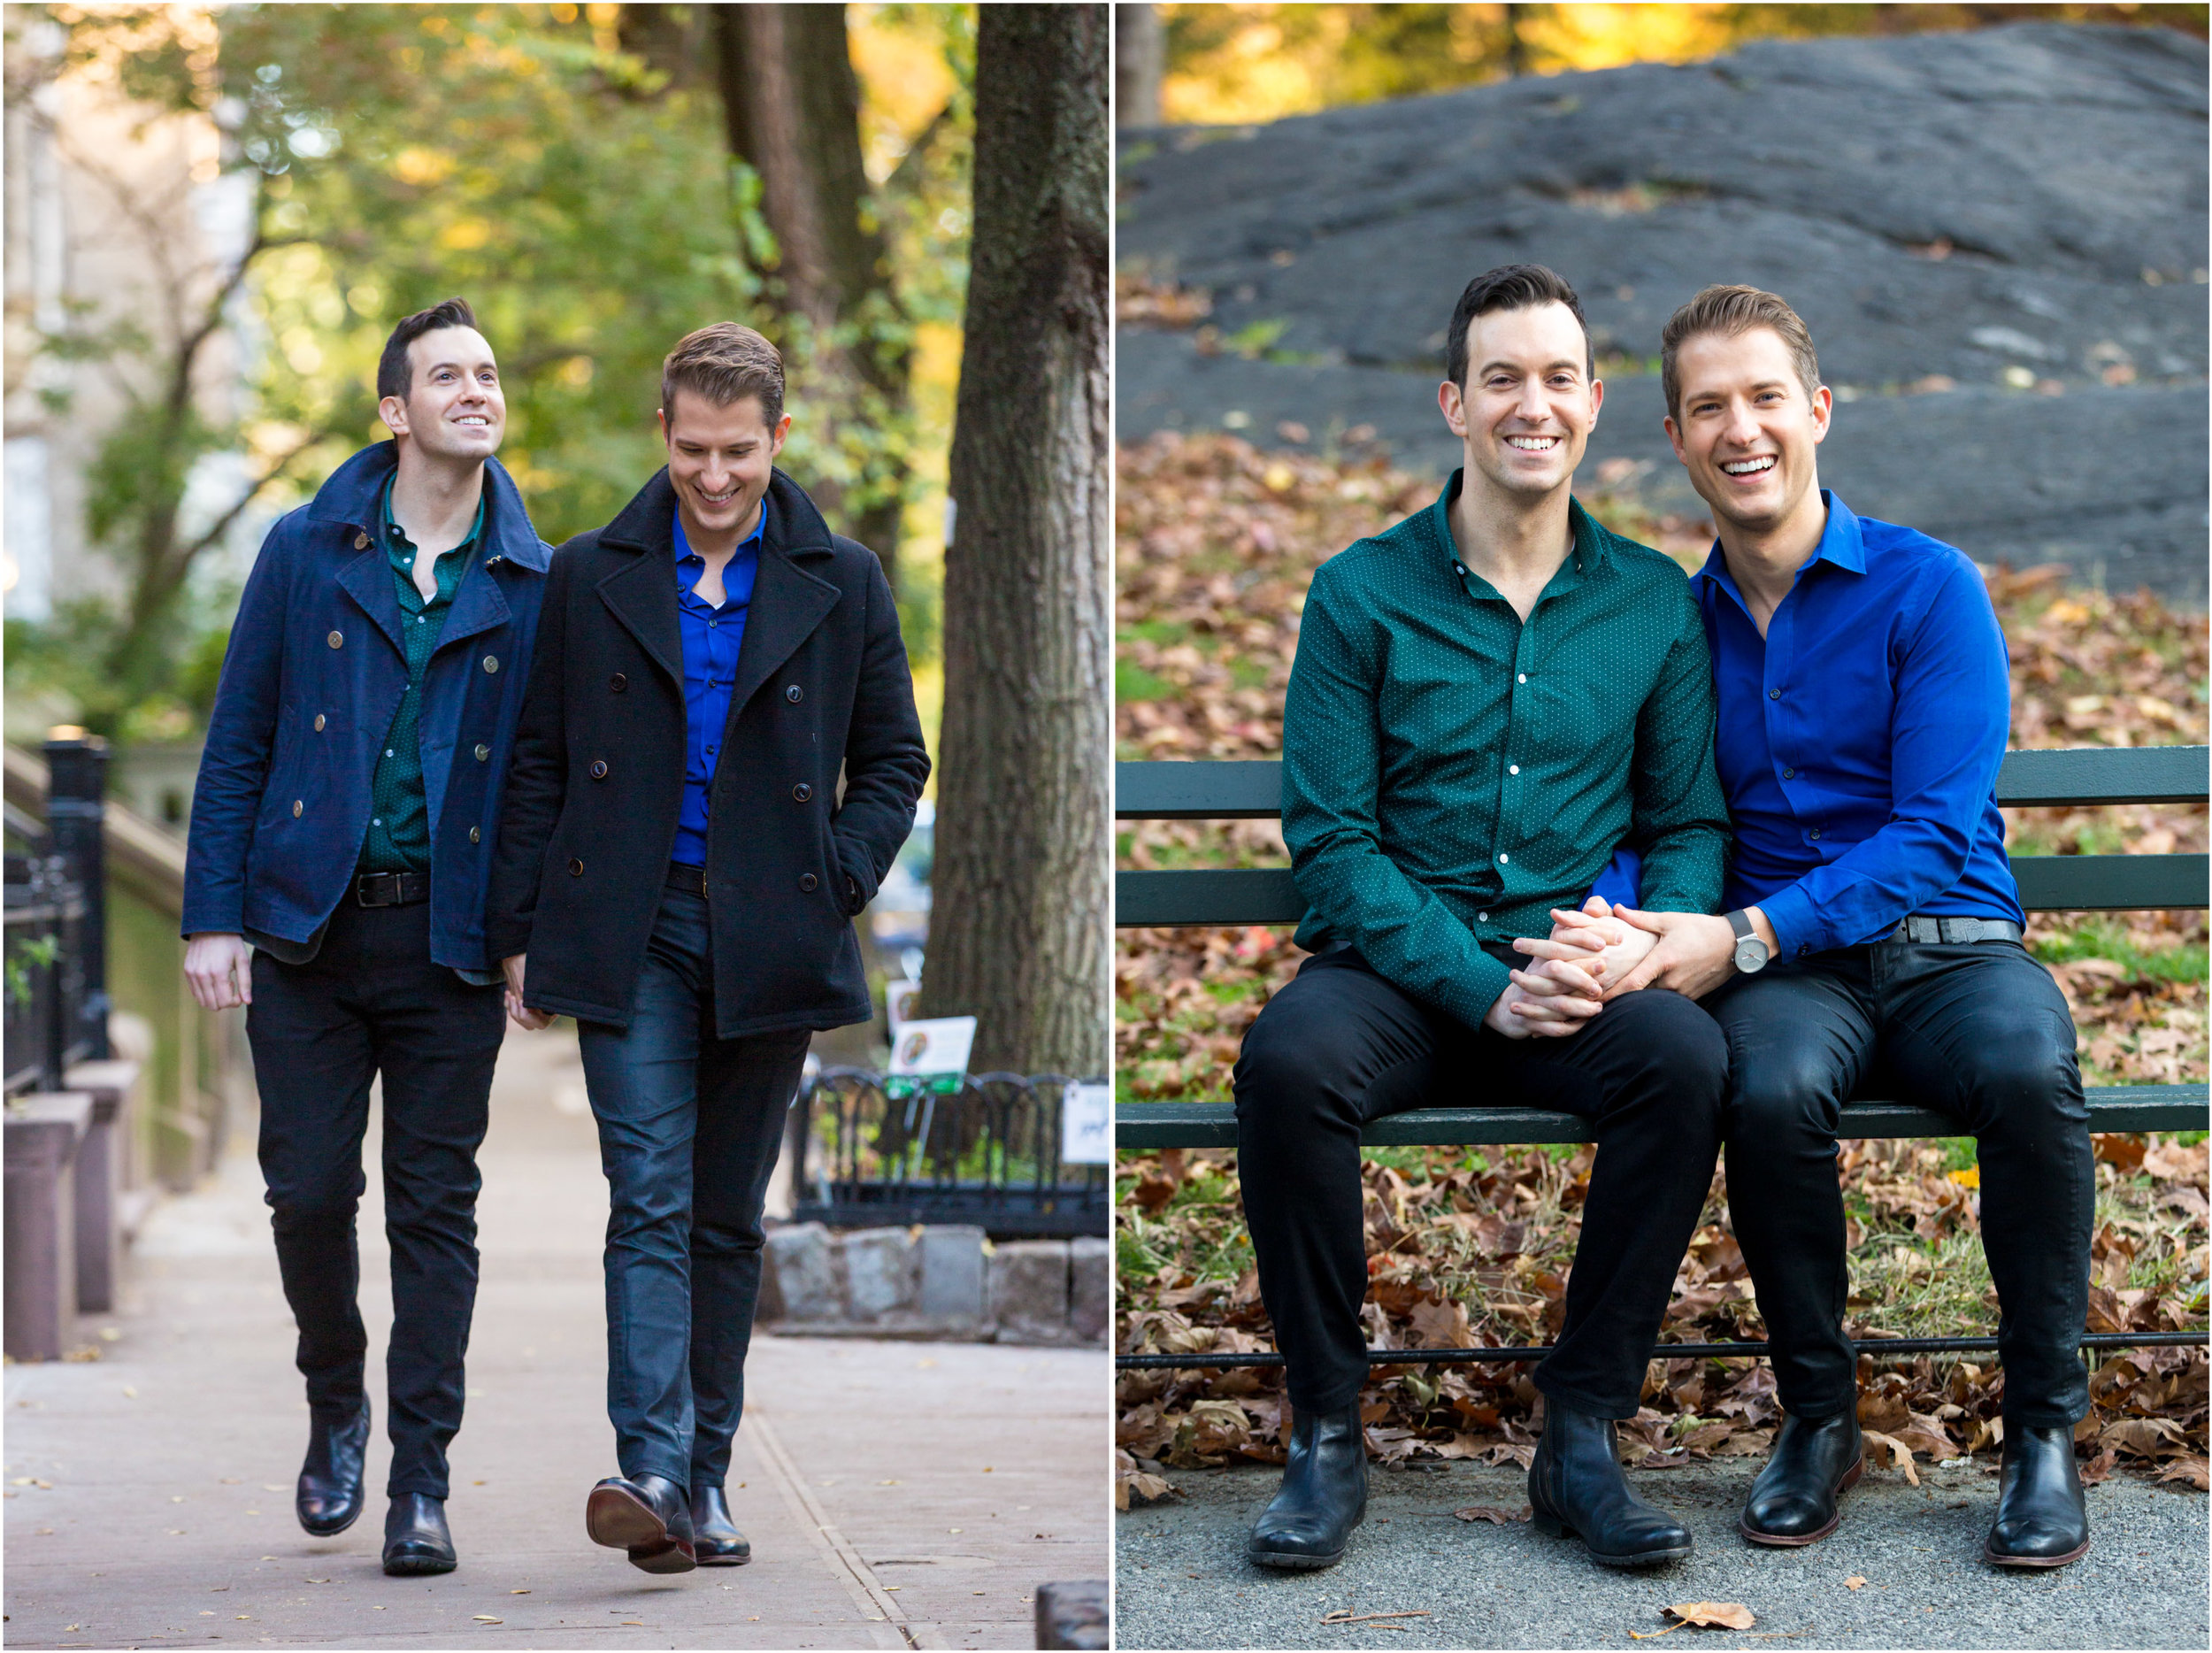 NYC Engagement Upper West Side Same Sex Gay Wedding Photographer-10.jpg